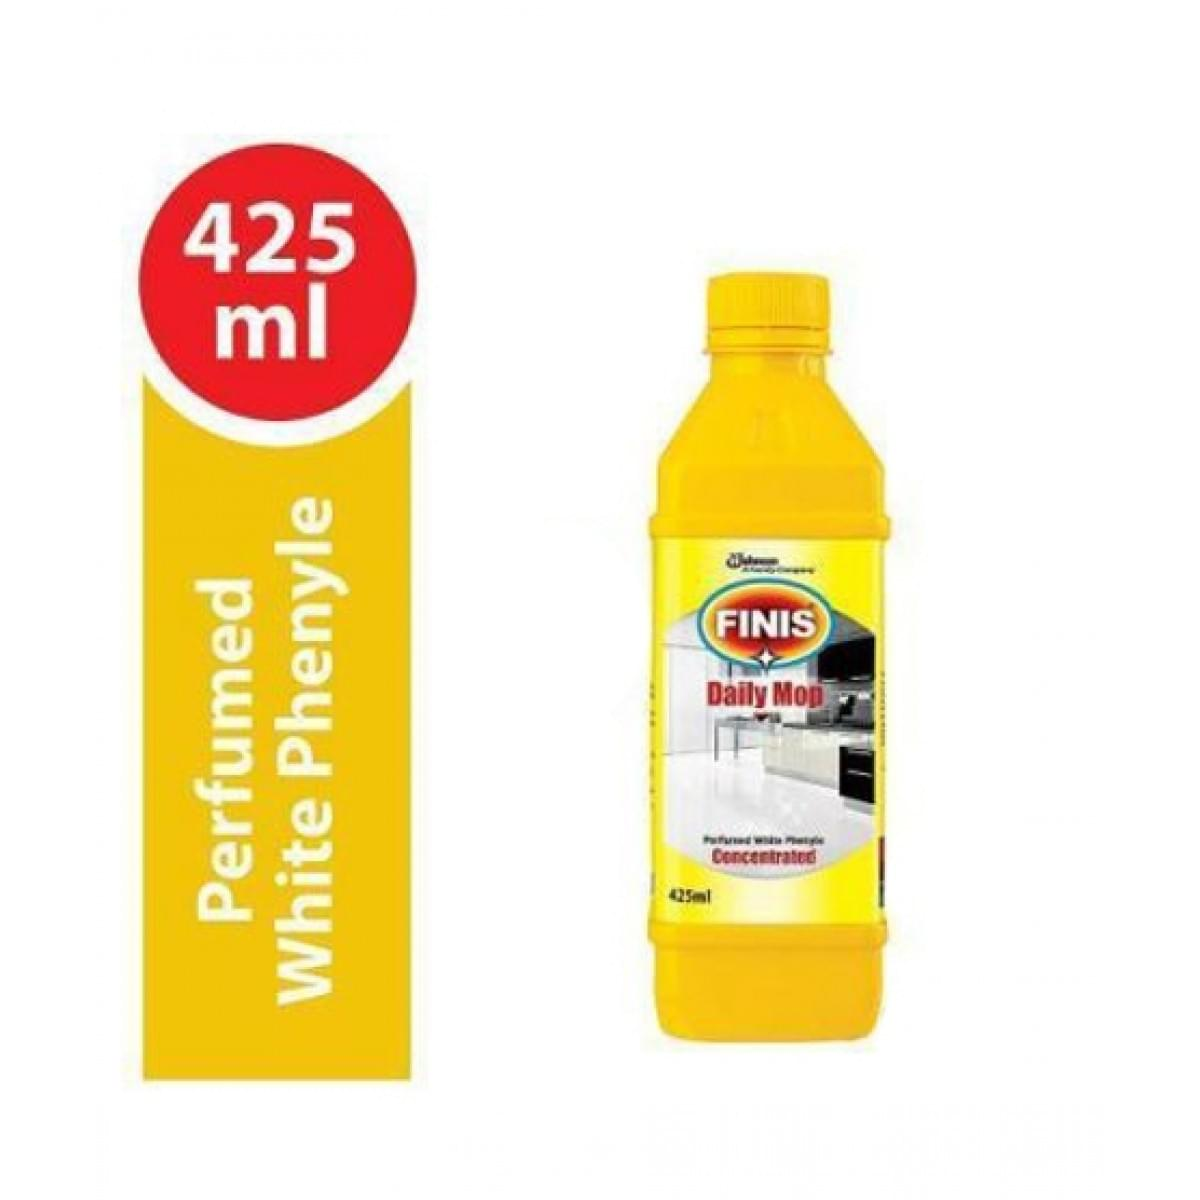 Finis Daily Mop Phenyle Concentrated 425ml